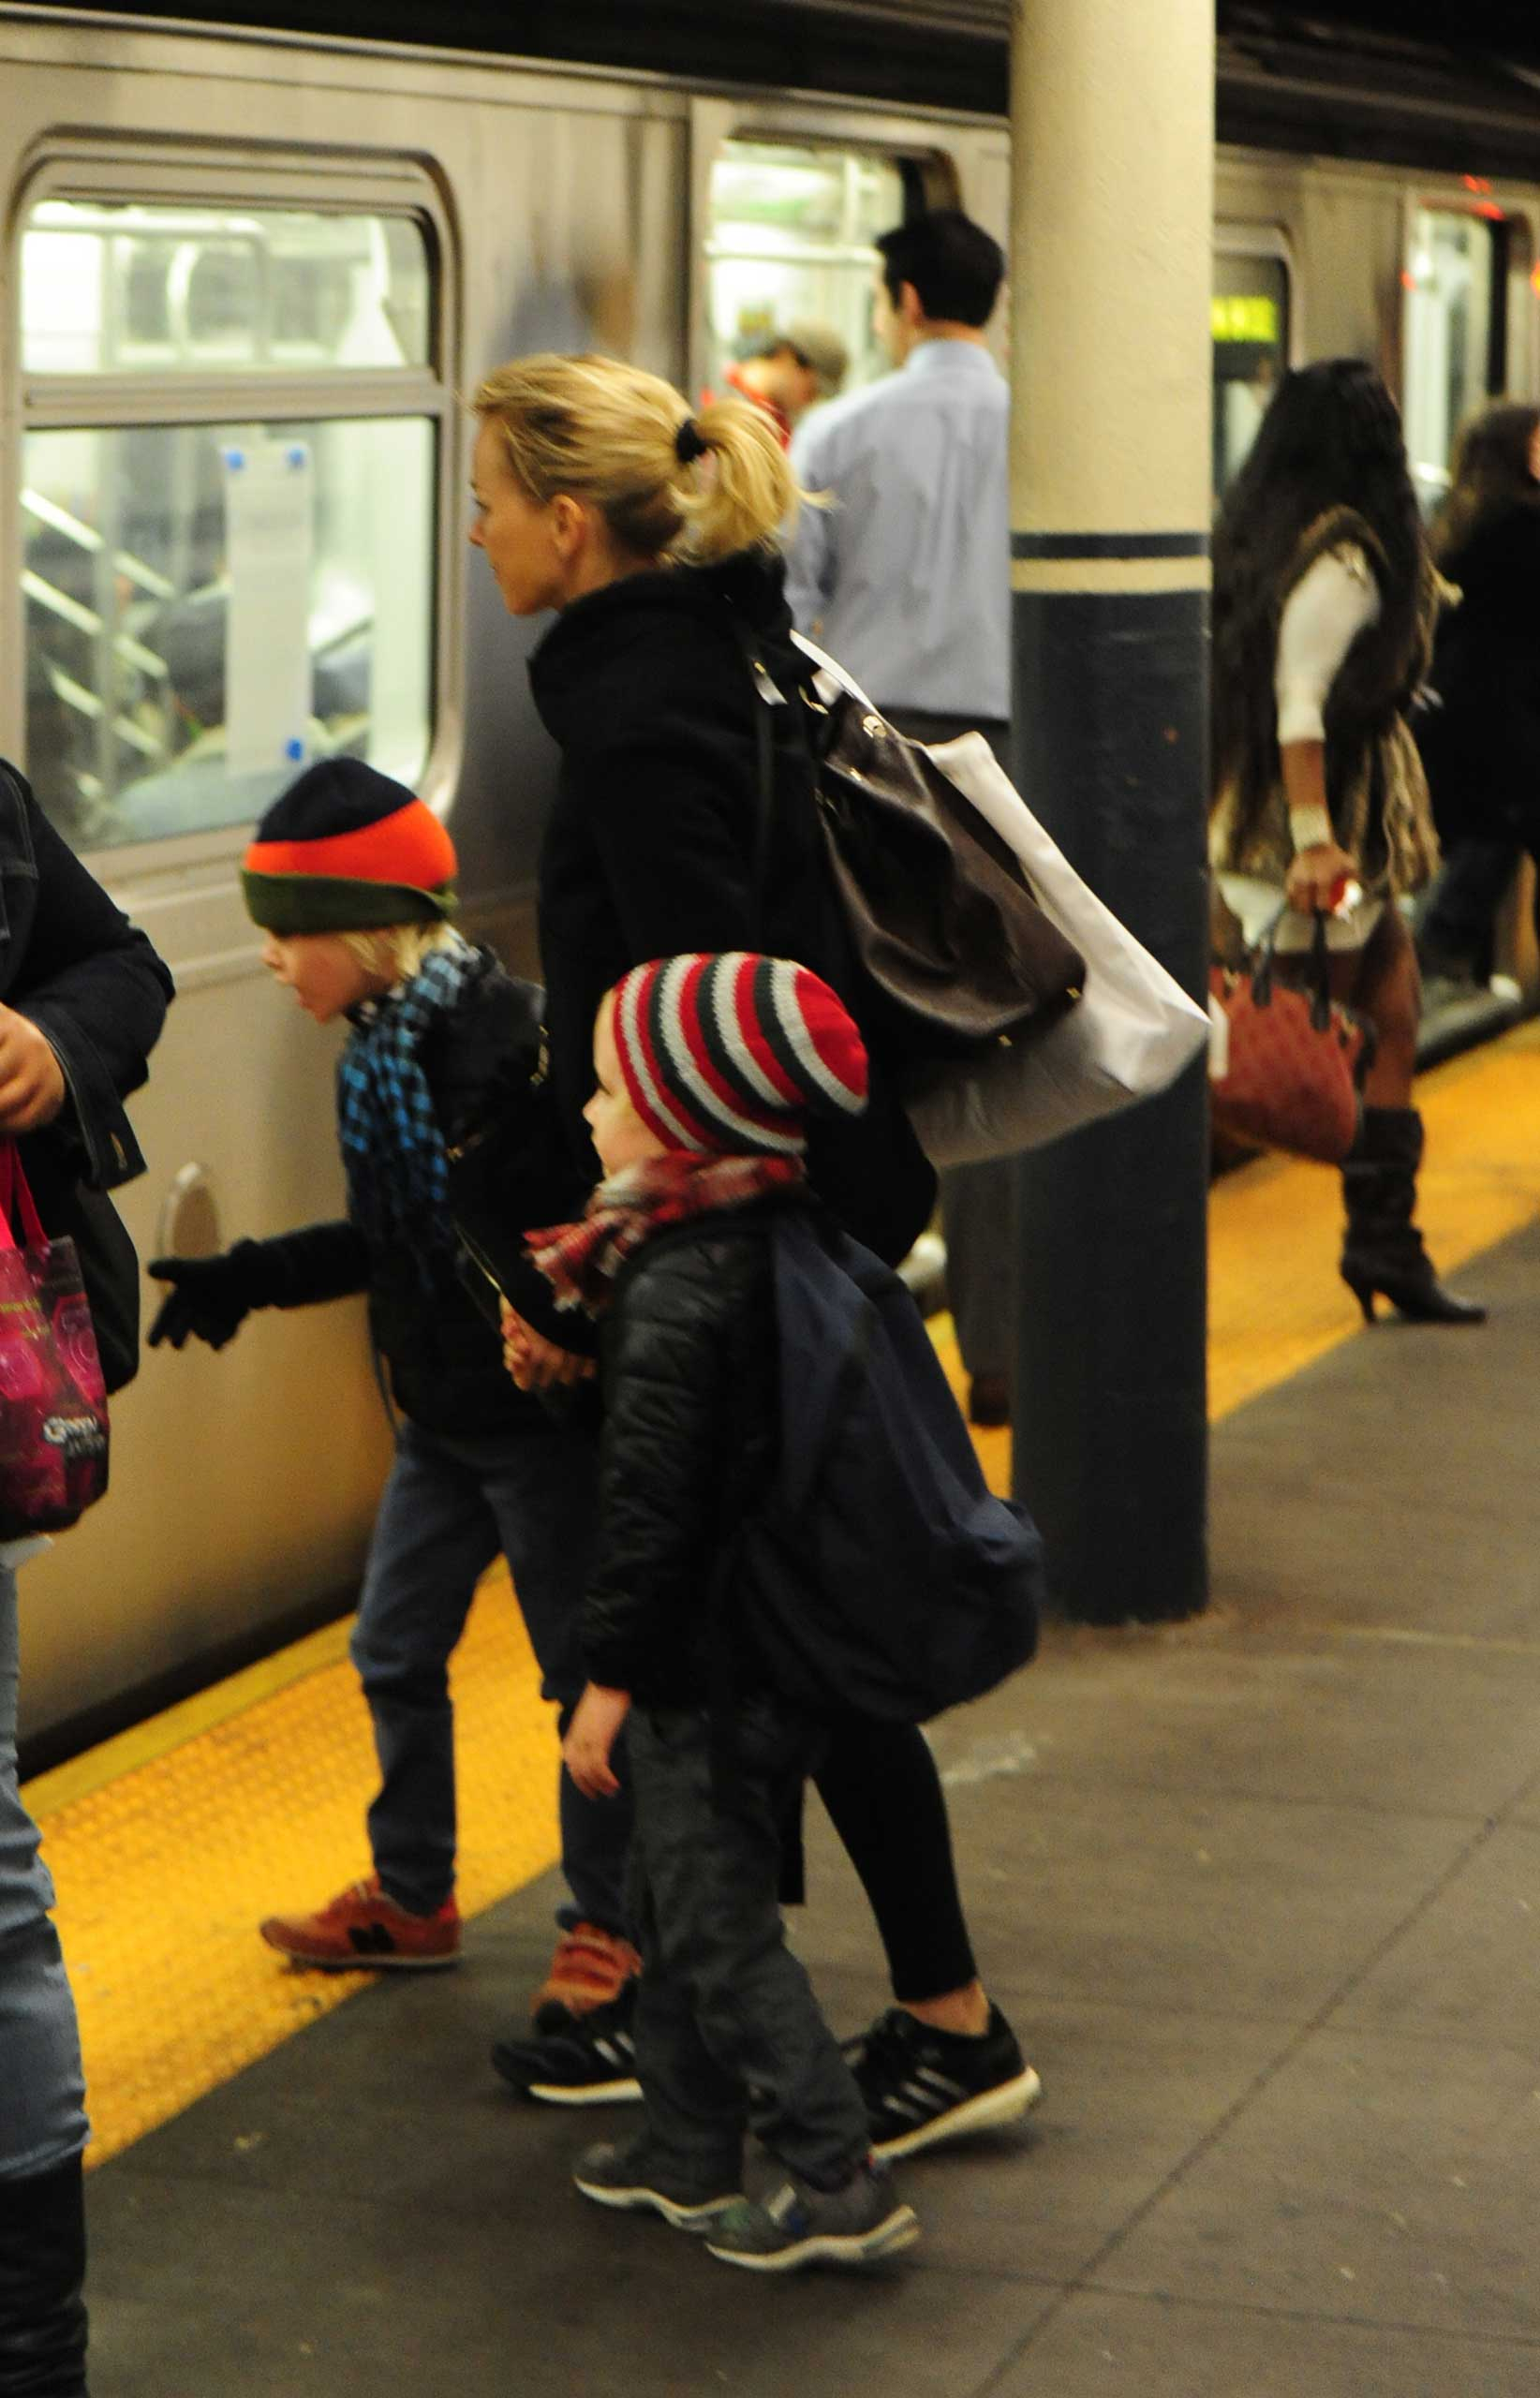 Naomi Watts takes the Subway with Alexander Schreiber and Samuel Schreiber in New York City on Oct. 24, 2013.